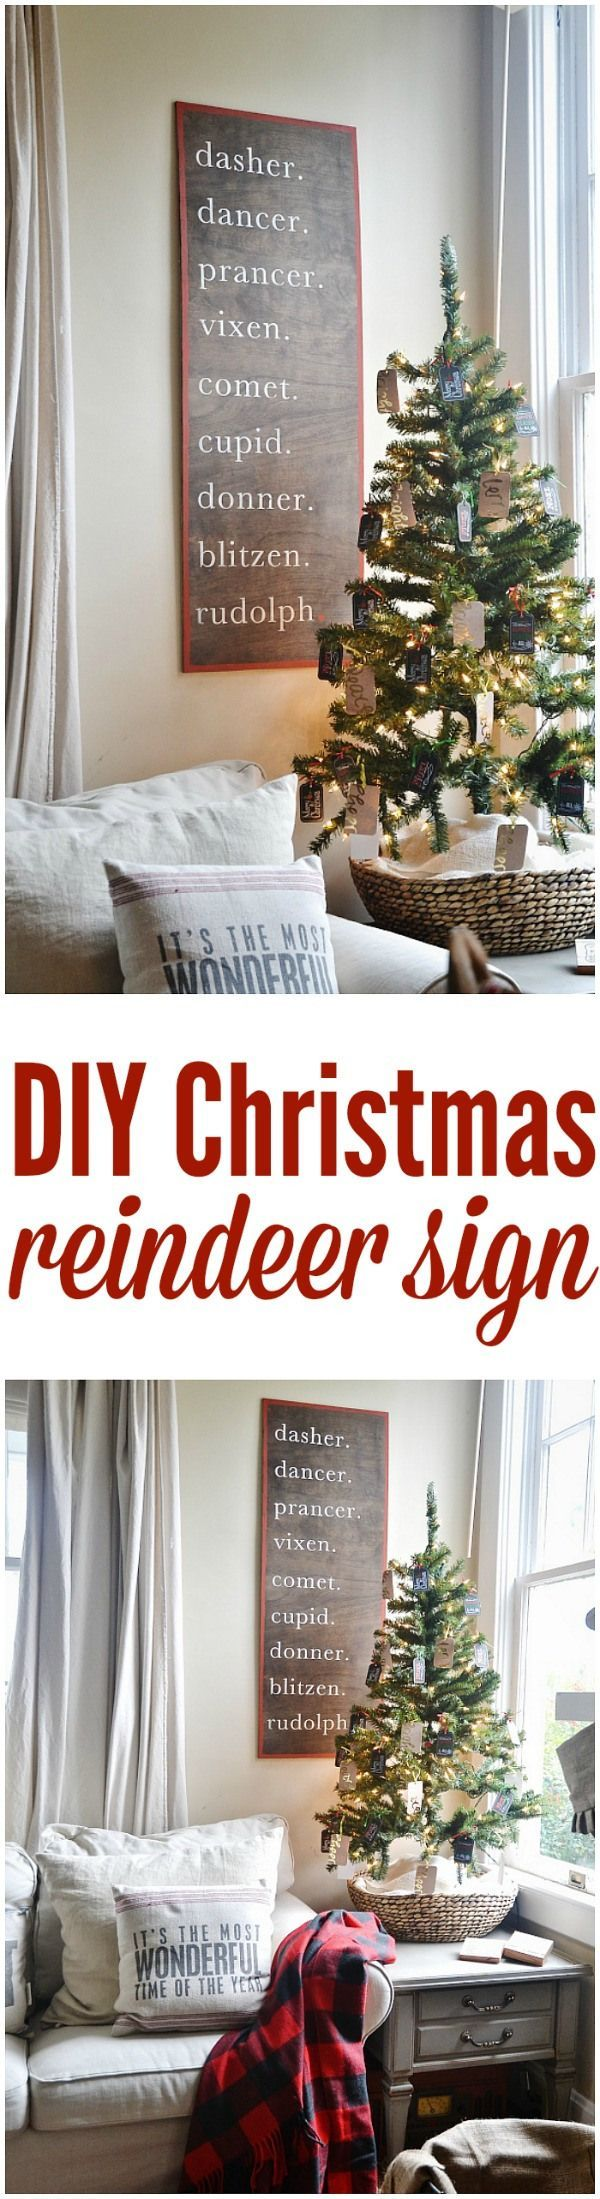 DIY Christmas Reindeer Sign